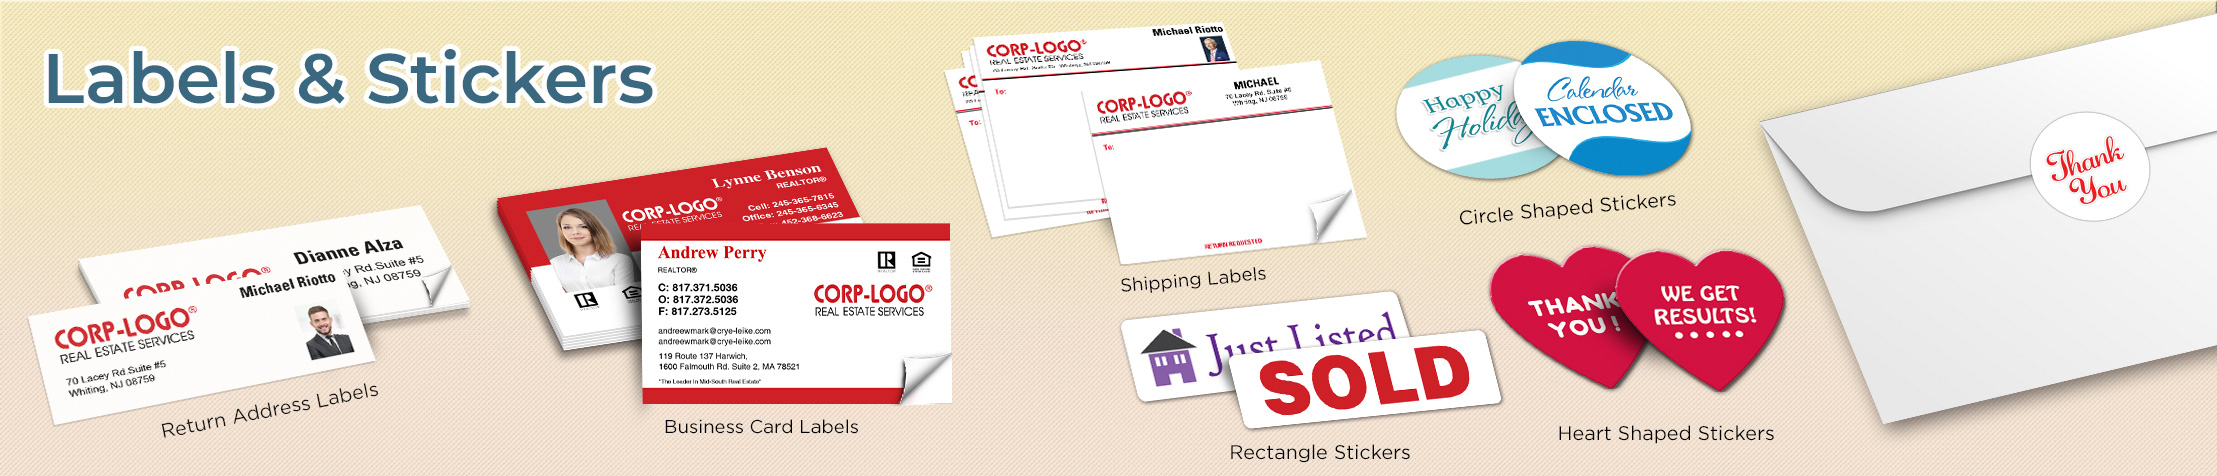 Crye-Leike Realtors Real Estate Labels and Stickers - Crye-Leike Realtors  business card labels, return address labels, shipping labels, and assorted stickers | BestPrintBuy.com